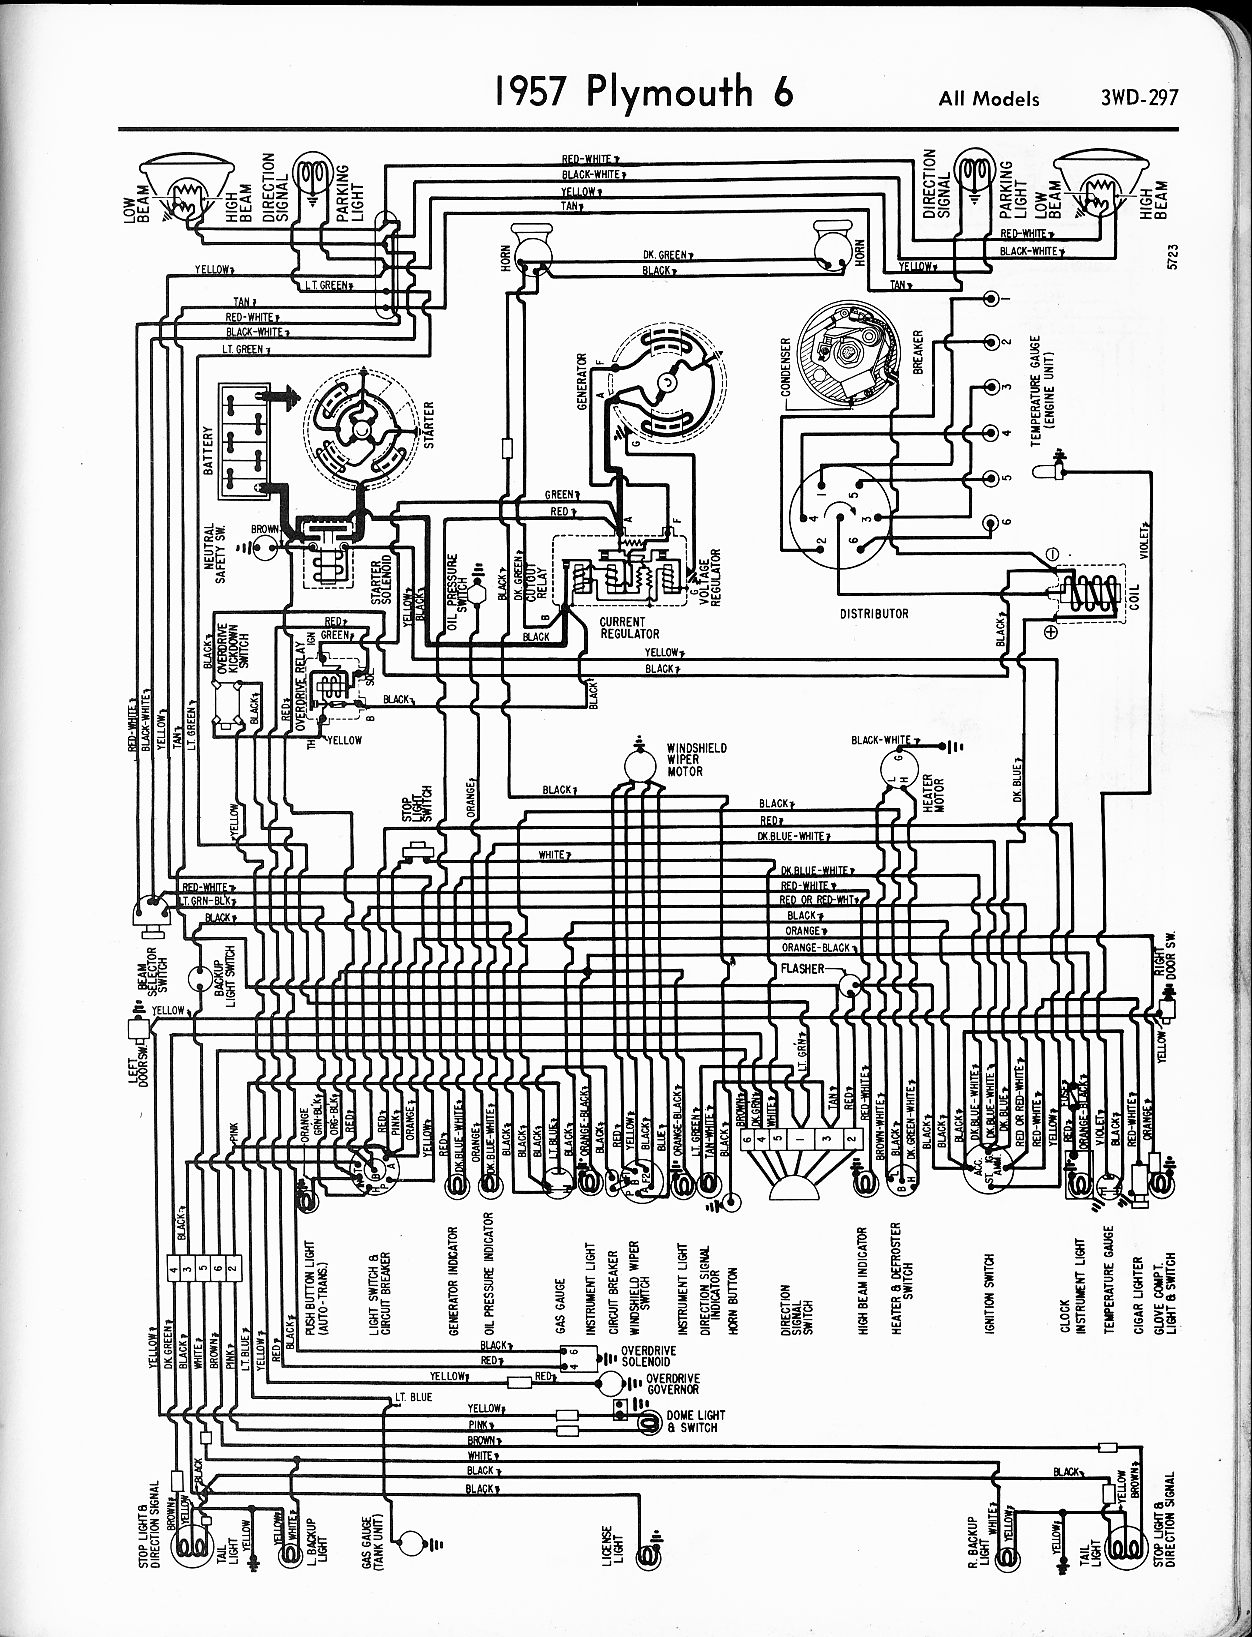 79 plymouth volare wiring diagram [wrg-9367] 79 plymouth volare wiring diagram 79 el camino wiring diagram